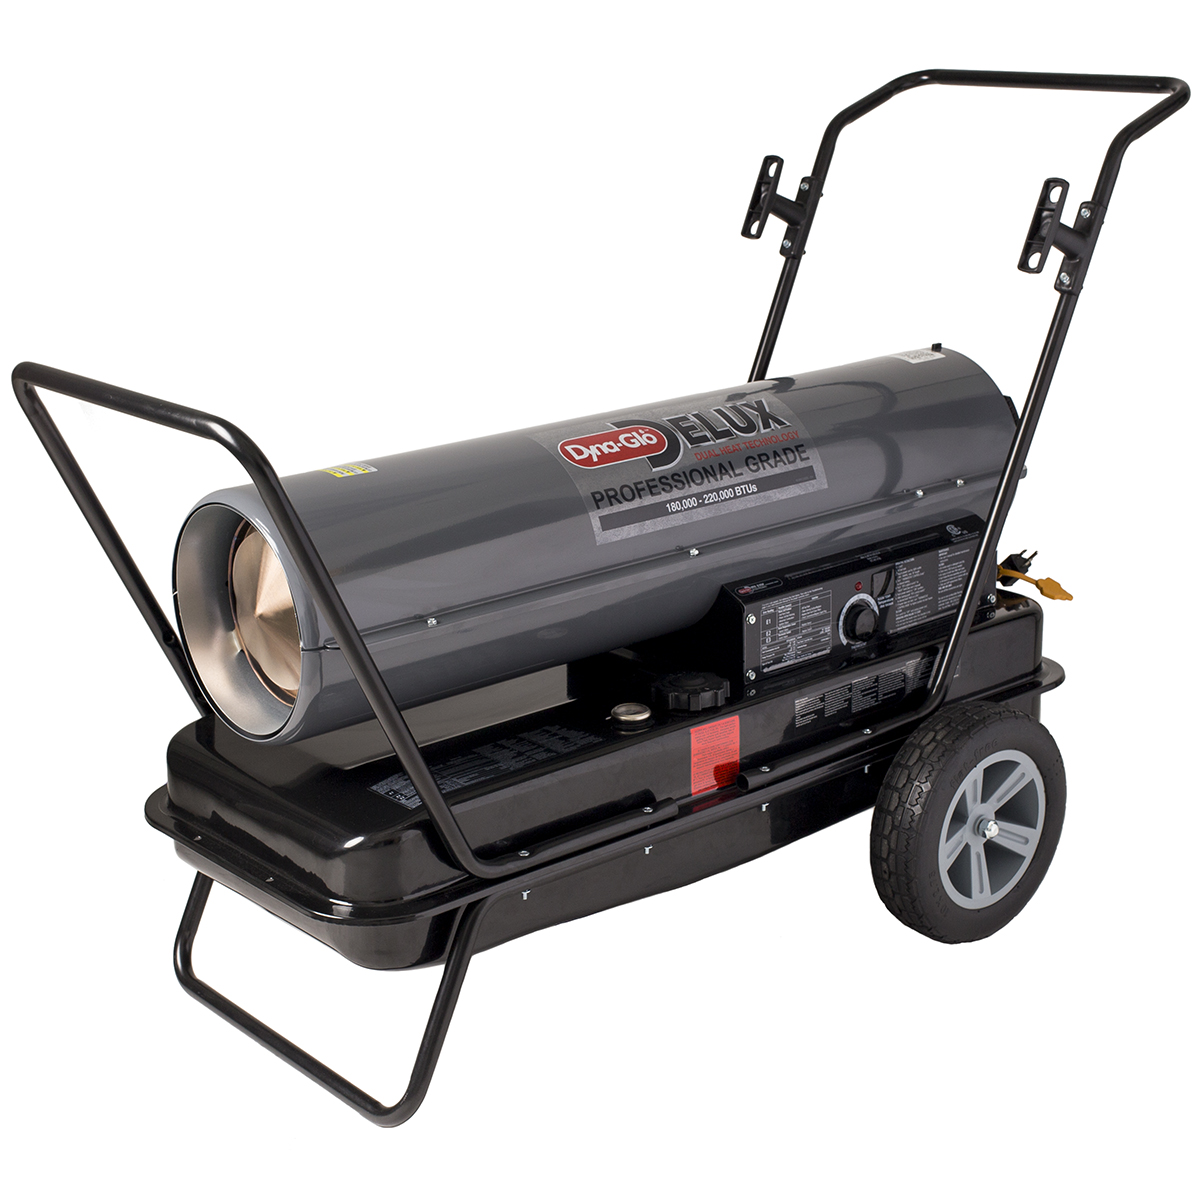 Dyna-Glo Delux 180,000 or 220,000 BTU Kerosene Forced Air Heater